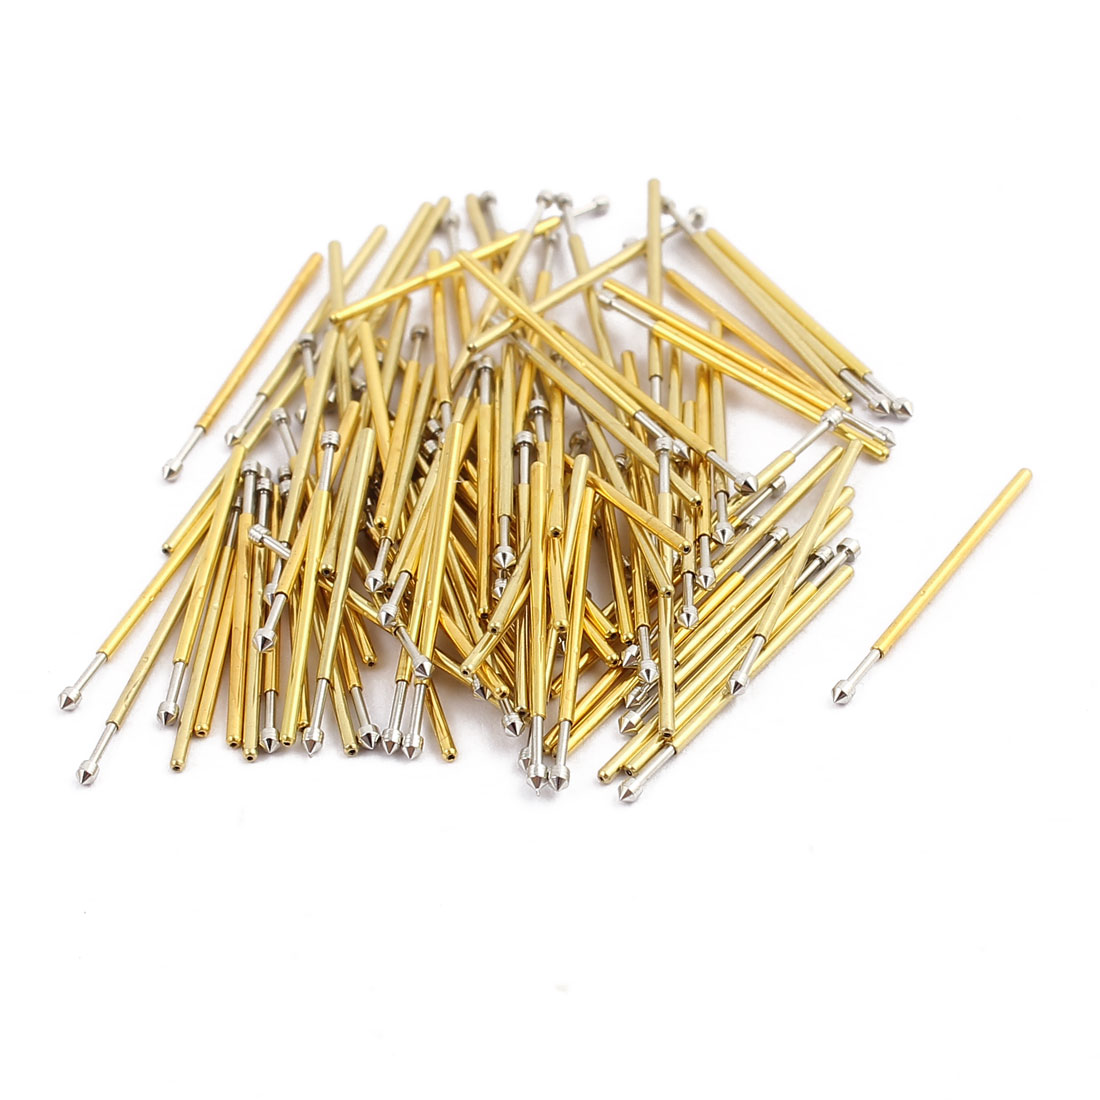 100pcs P50-E2 0.68mm Dia 16.5mm Length Metal Spring Pressure Test Probe Needle